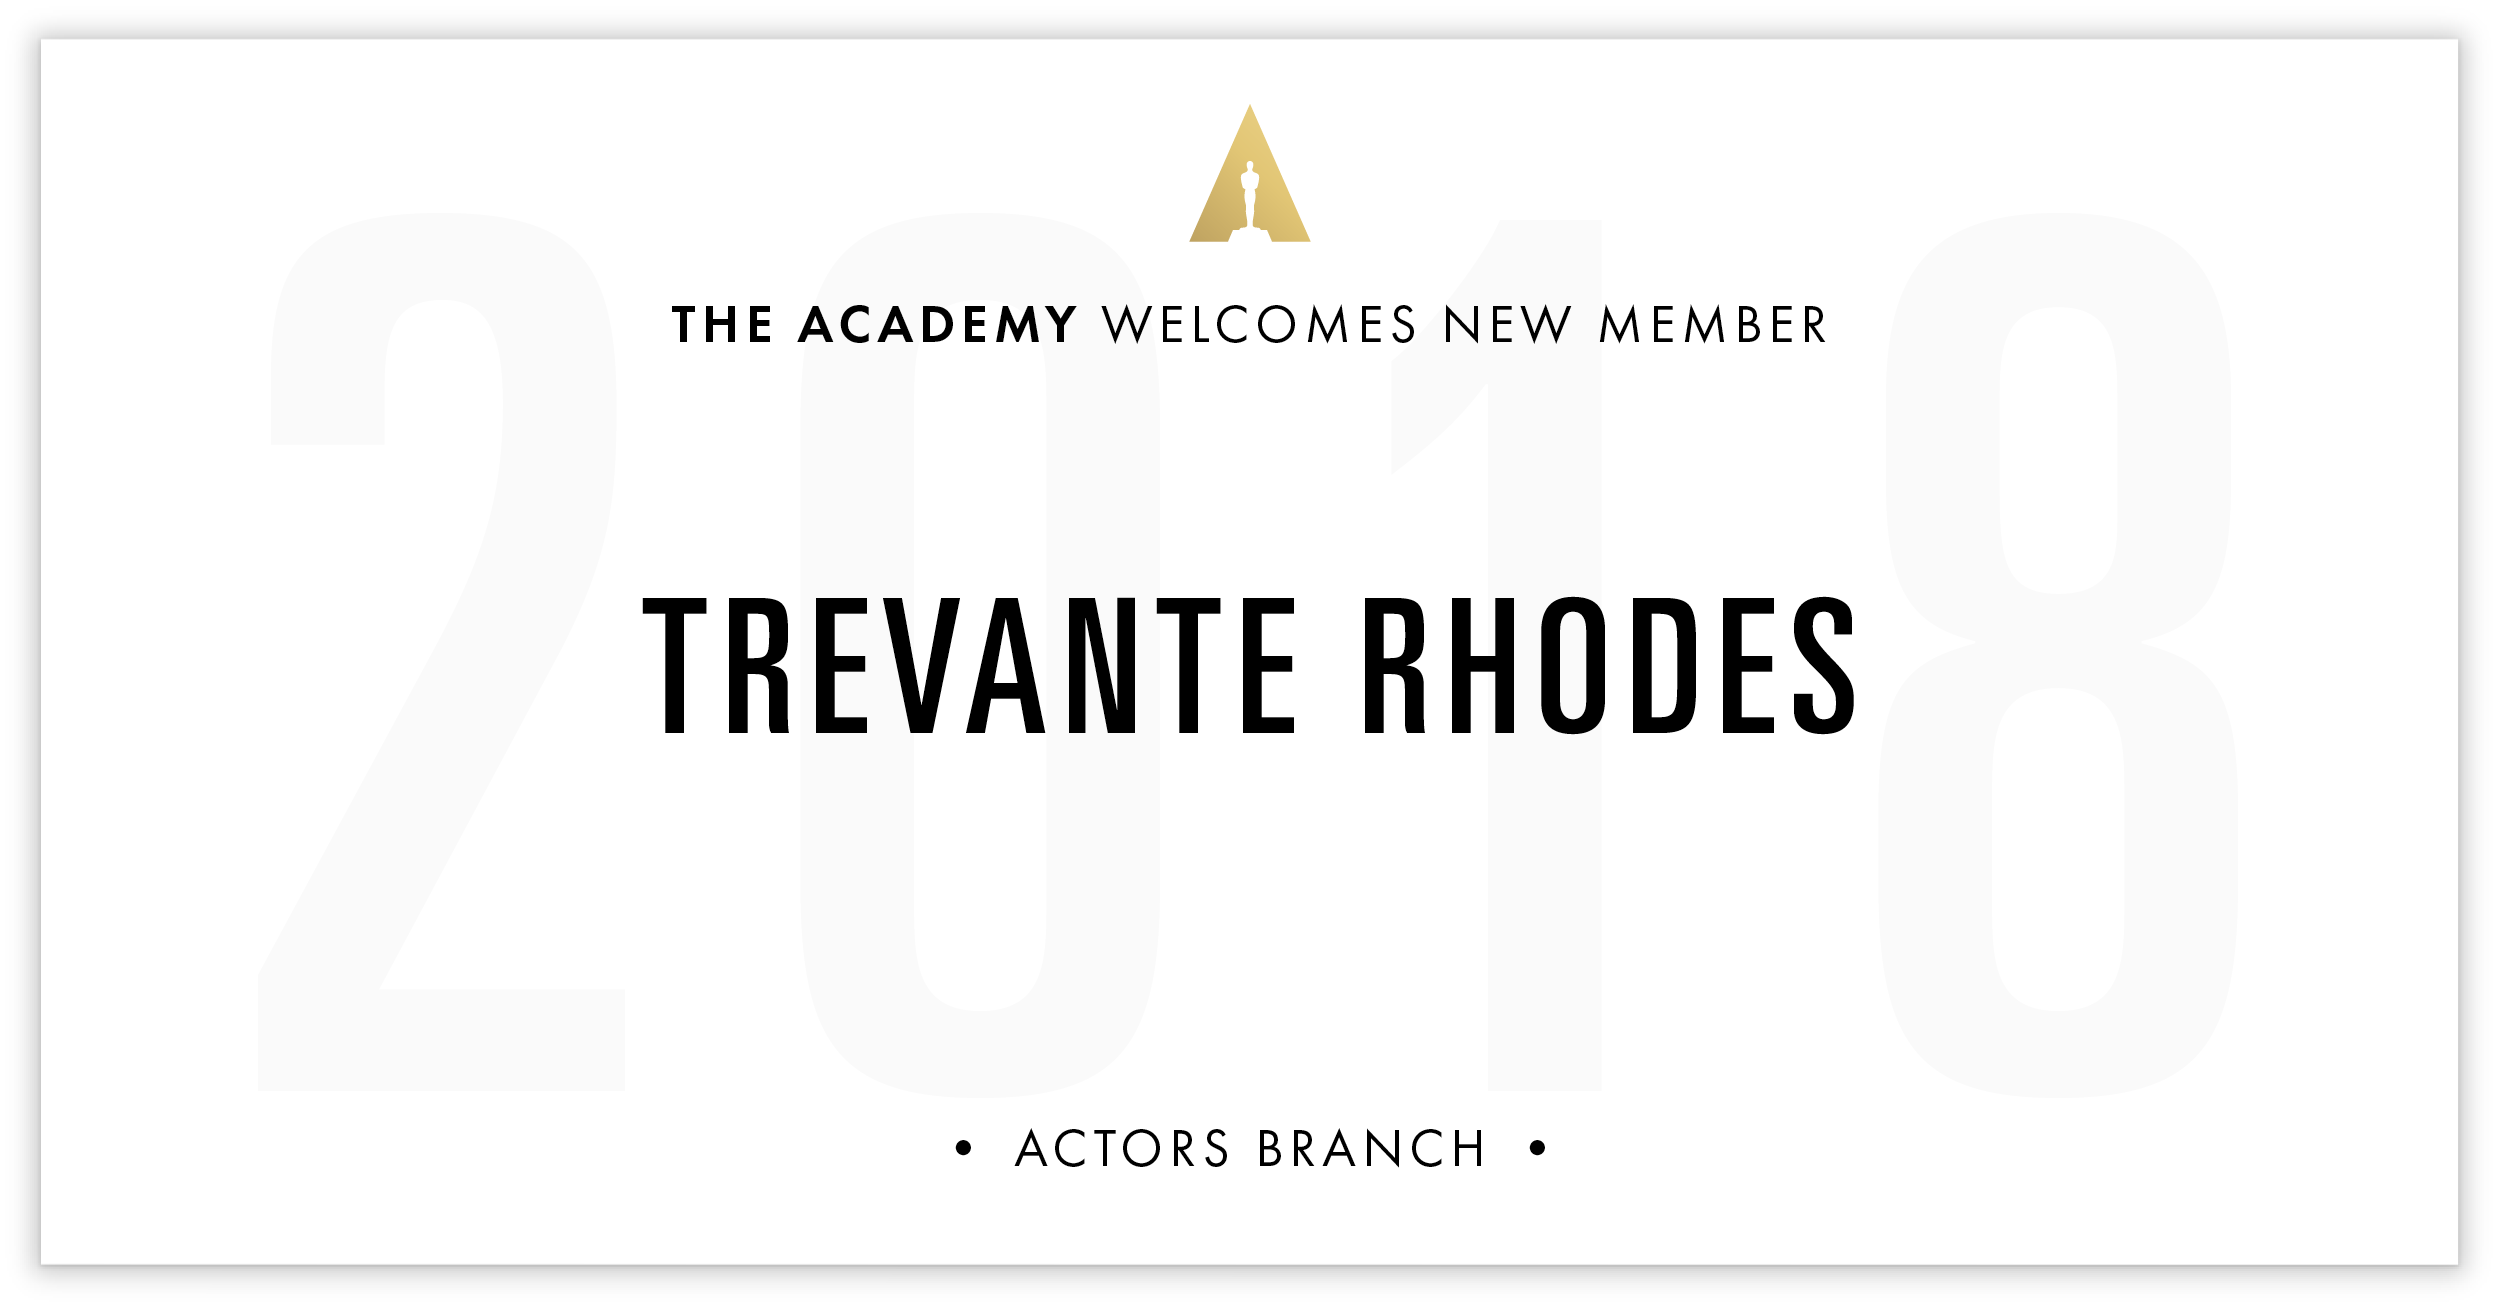 Trevante Rhodes is invited!